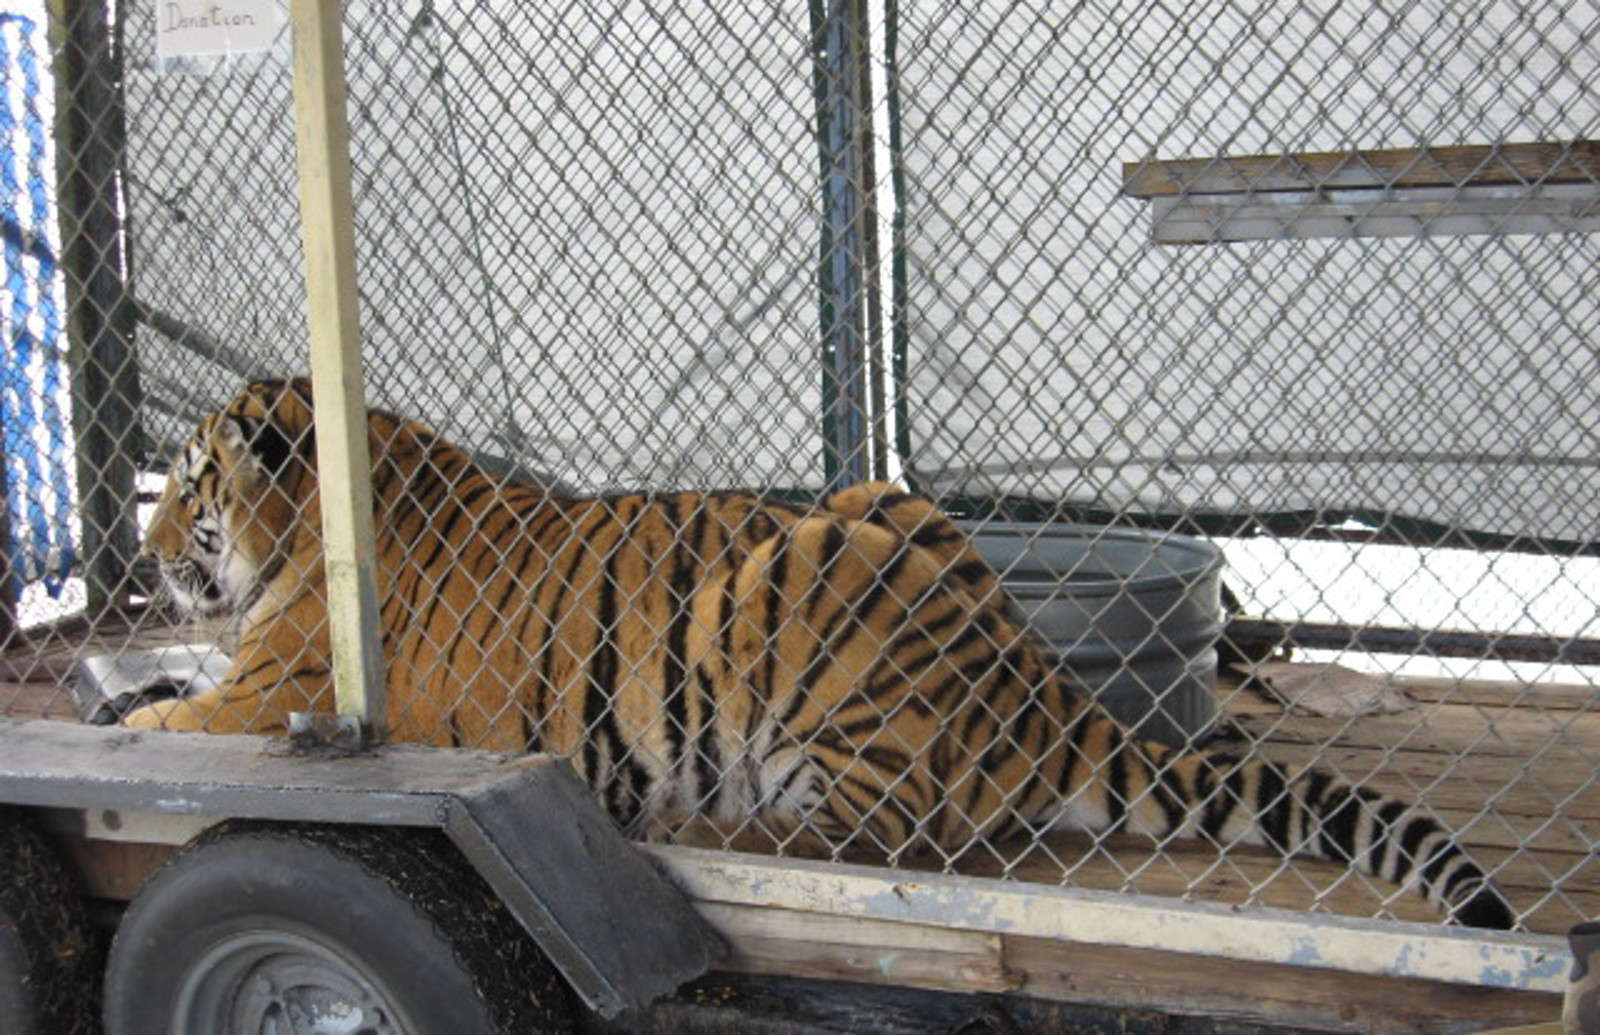 Why I Refused to Give Up the Fight to Free Samson the Tiger From Display at Florida Craft Fair